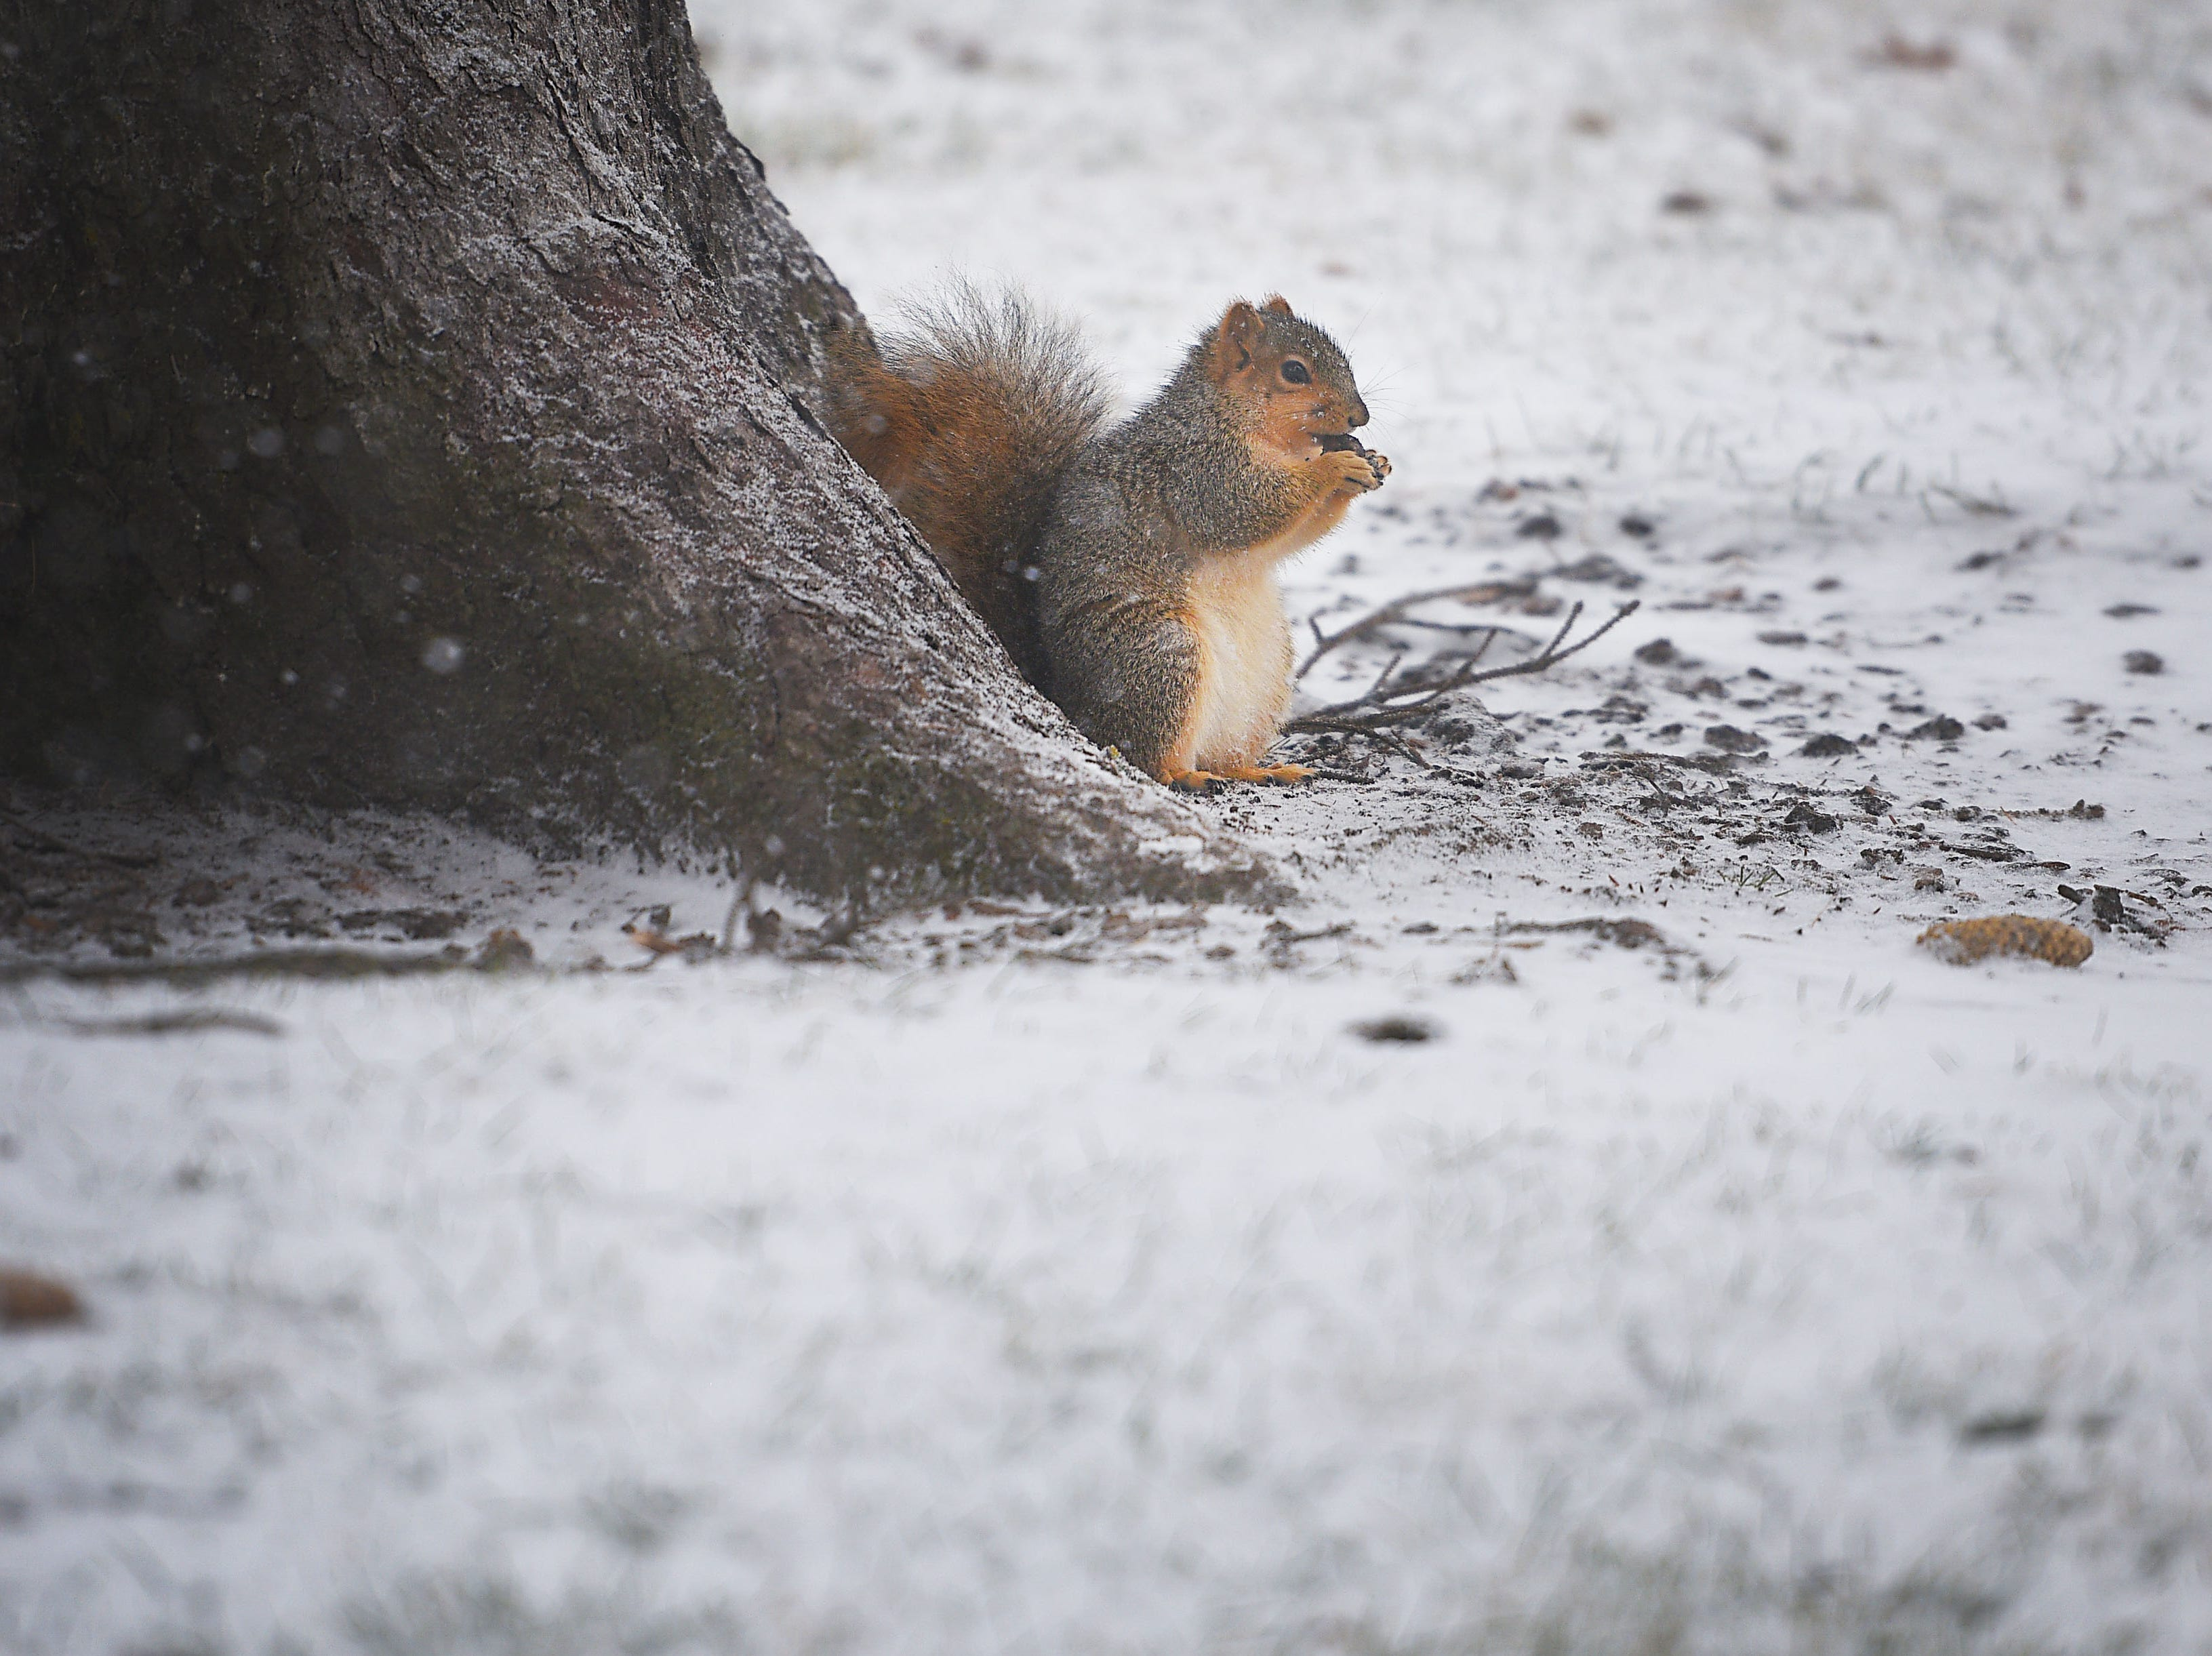 A squirrel eats a nut under a tree at McKennan Park on the first snowfall of December, Saturday, Dec. 1, in Sioux Falls.